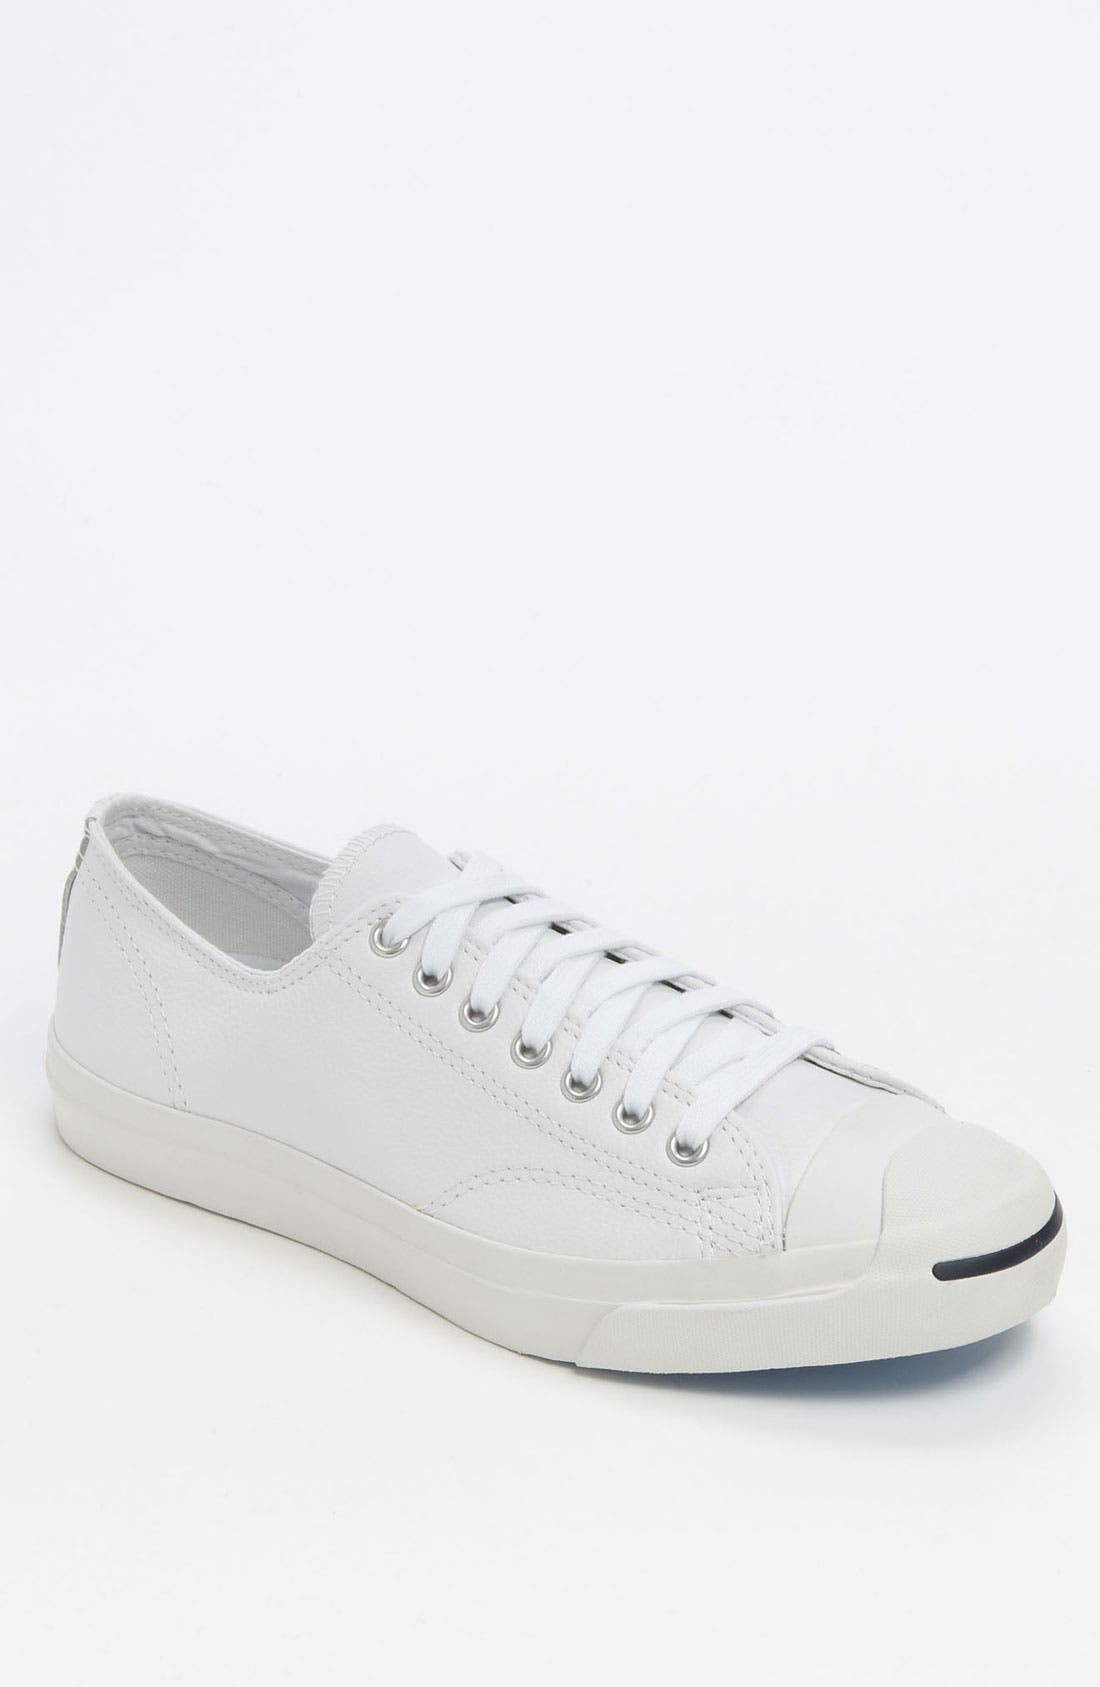 'Jack Purcell' Leather Sneaker,                         Main,                         color, WHITE/ NAVY